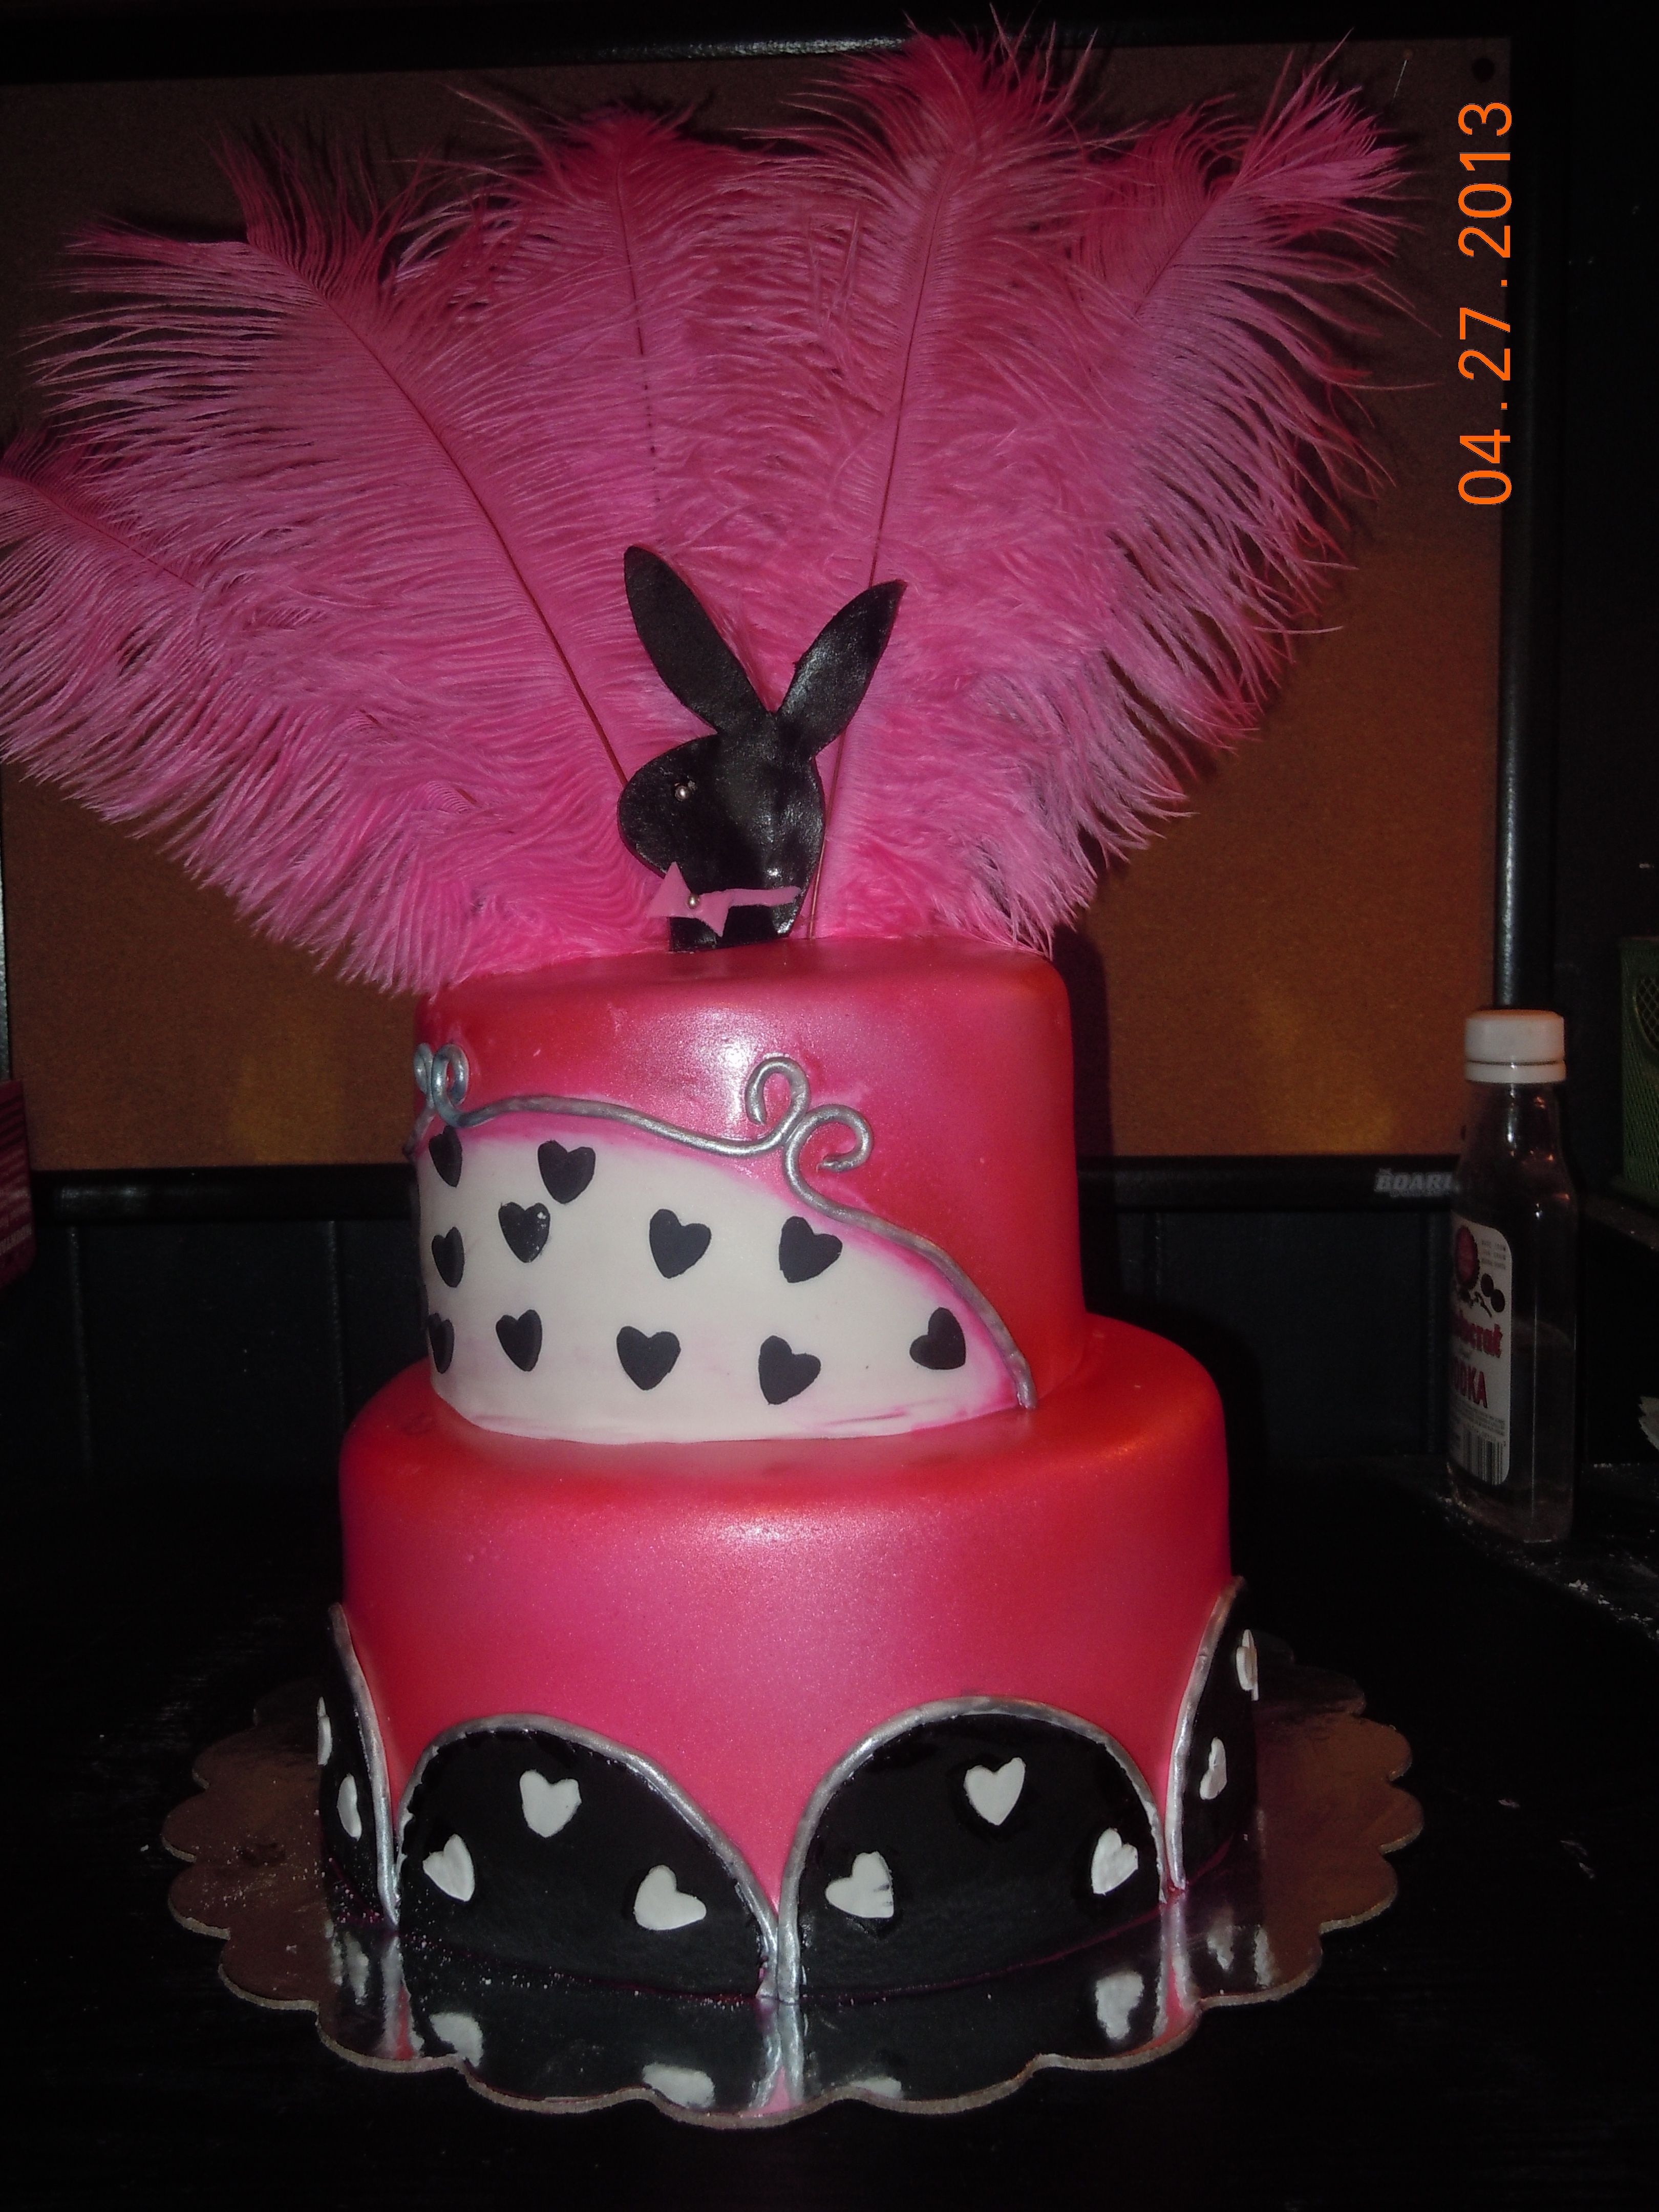 Playboy Cake Design : Playboy Bunny Birthday Cake Greathouse Cakes N Treats ...